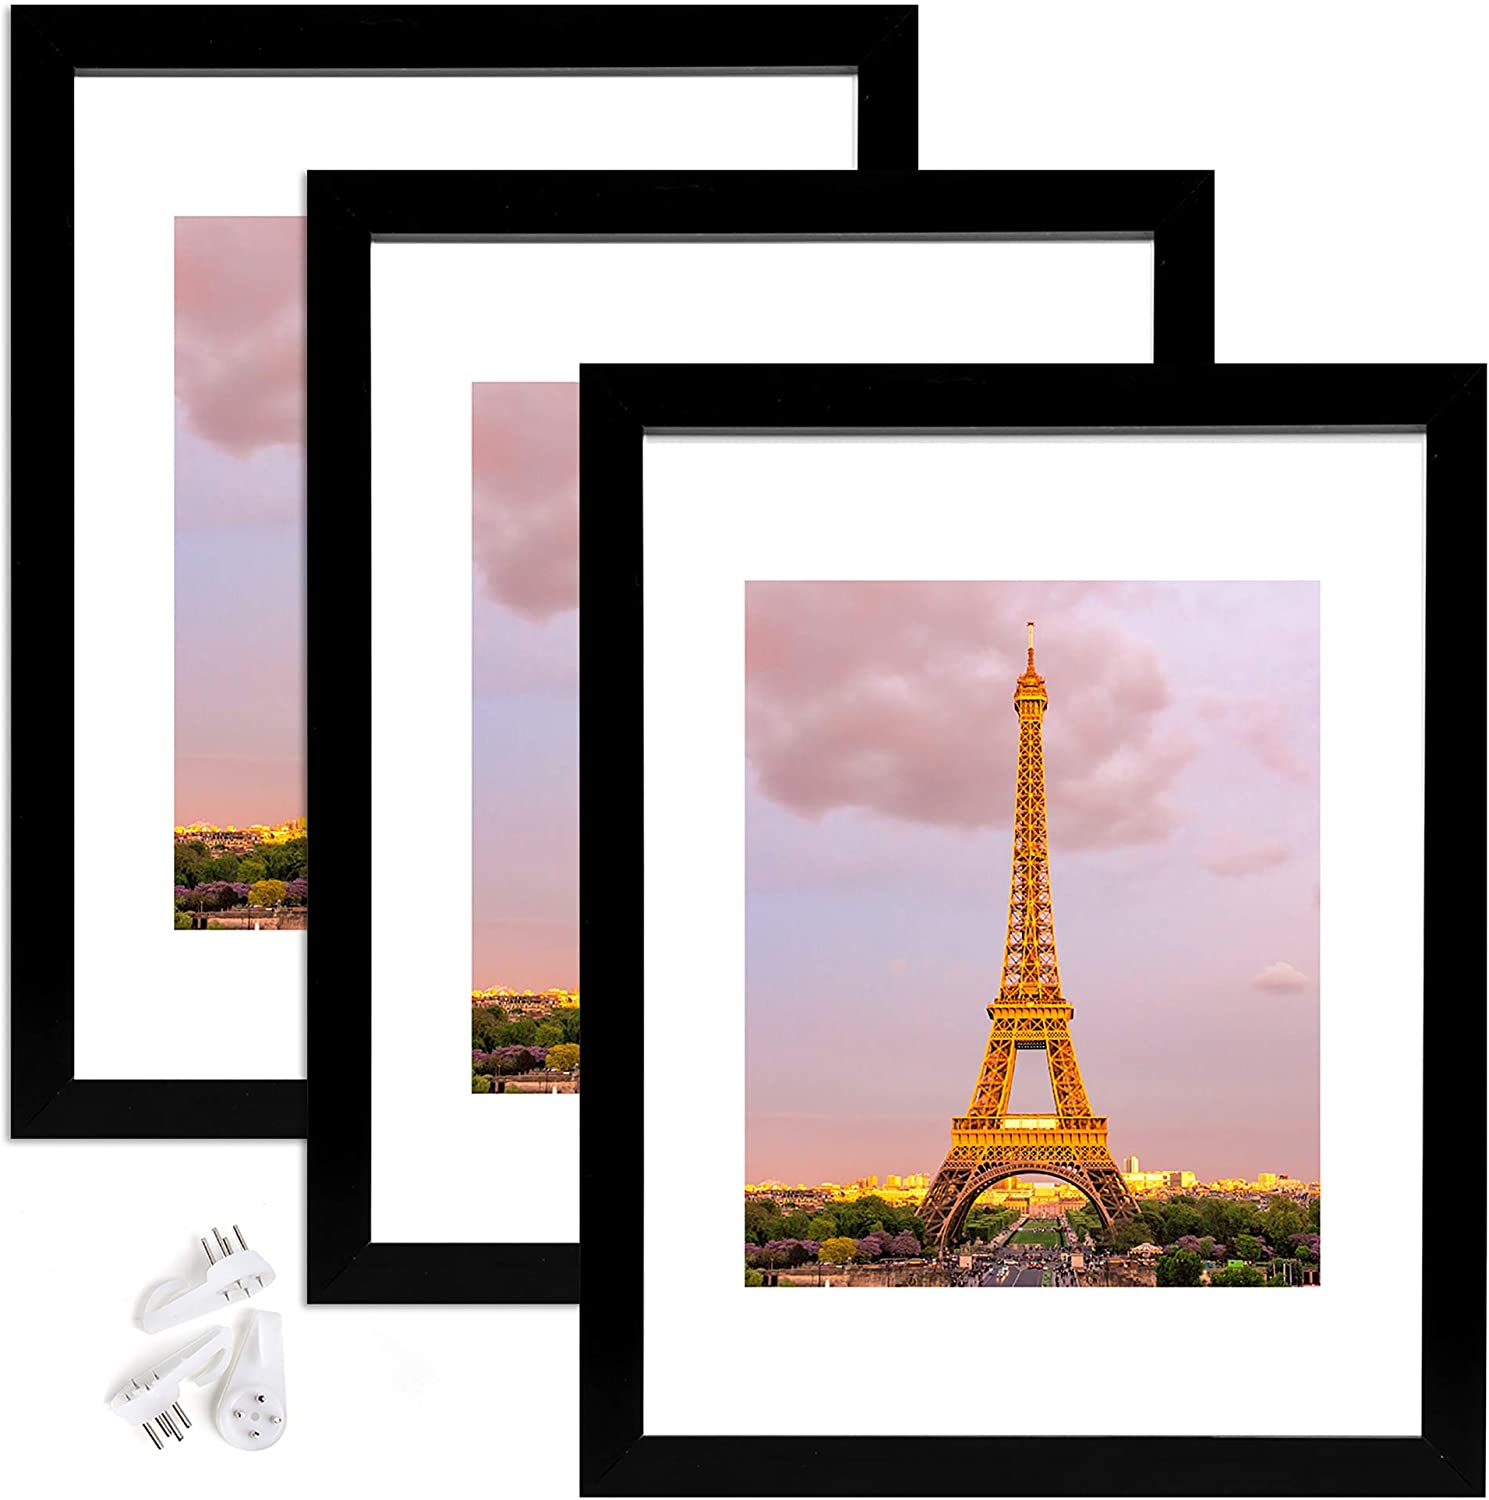 upsimples 11x14 Picture Frame Set of 3, Made of High Definition Glass for 8x10 with Mat or 11x14 Without Mat, Wall Mounting Photo Frame Black -